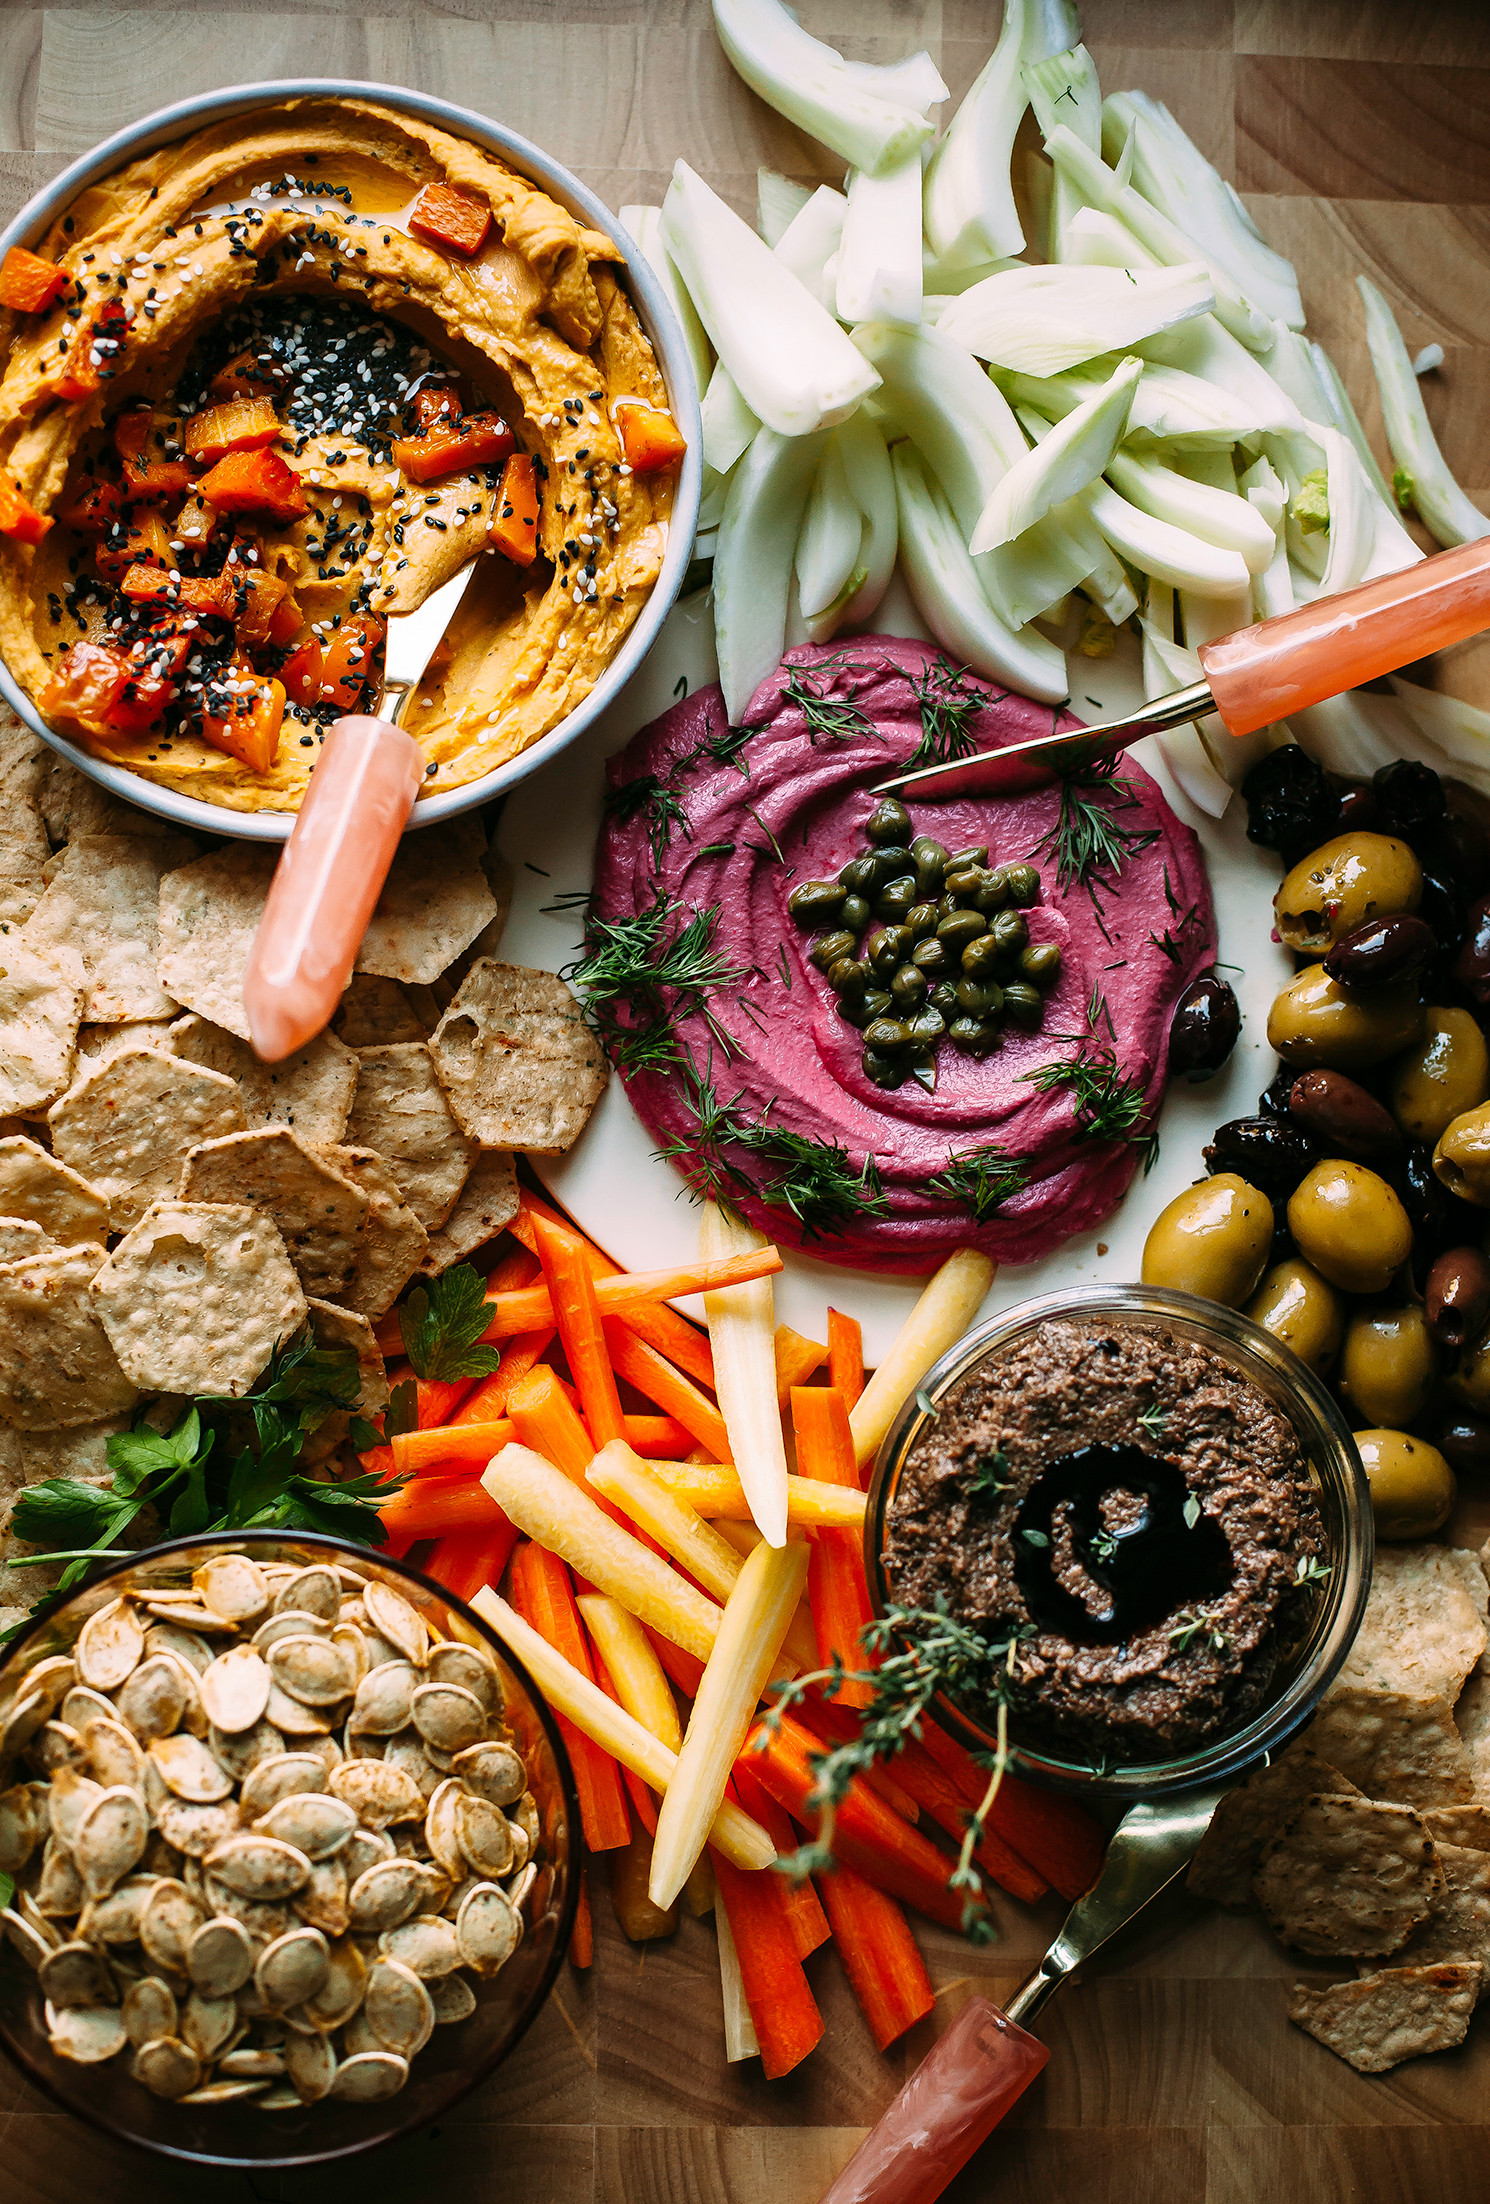 Vegan Snack Recipes  THE ULTIMATE VEGAN SNACK BOARD The First Mess Plant